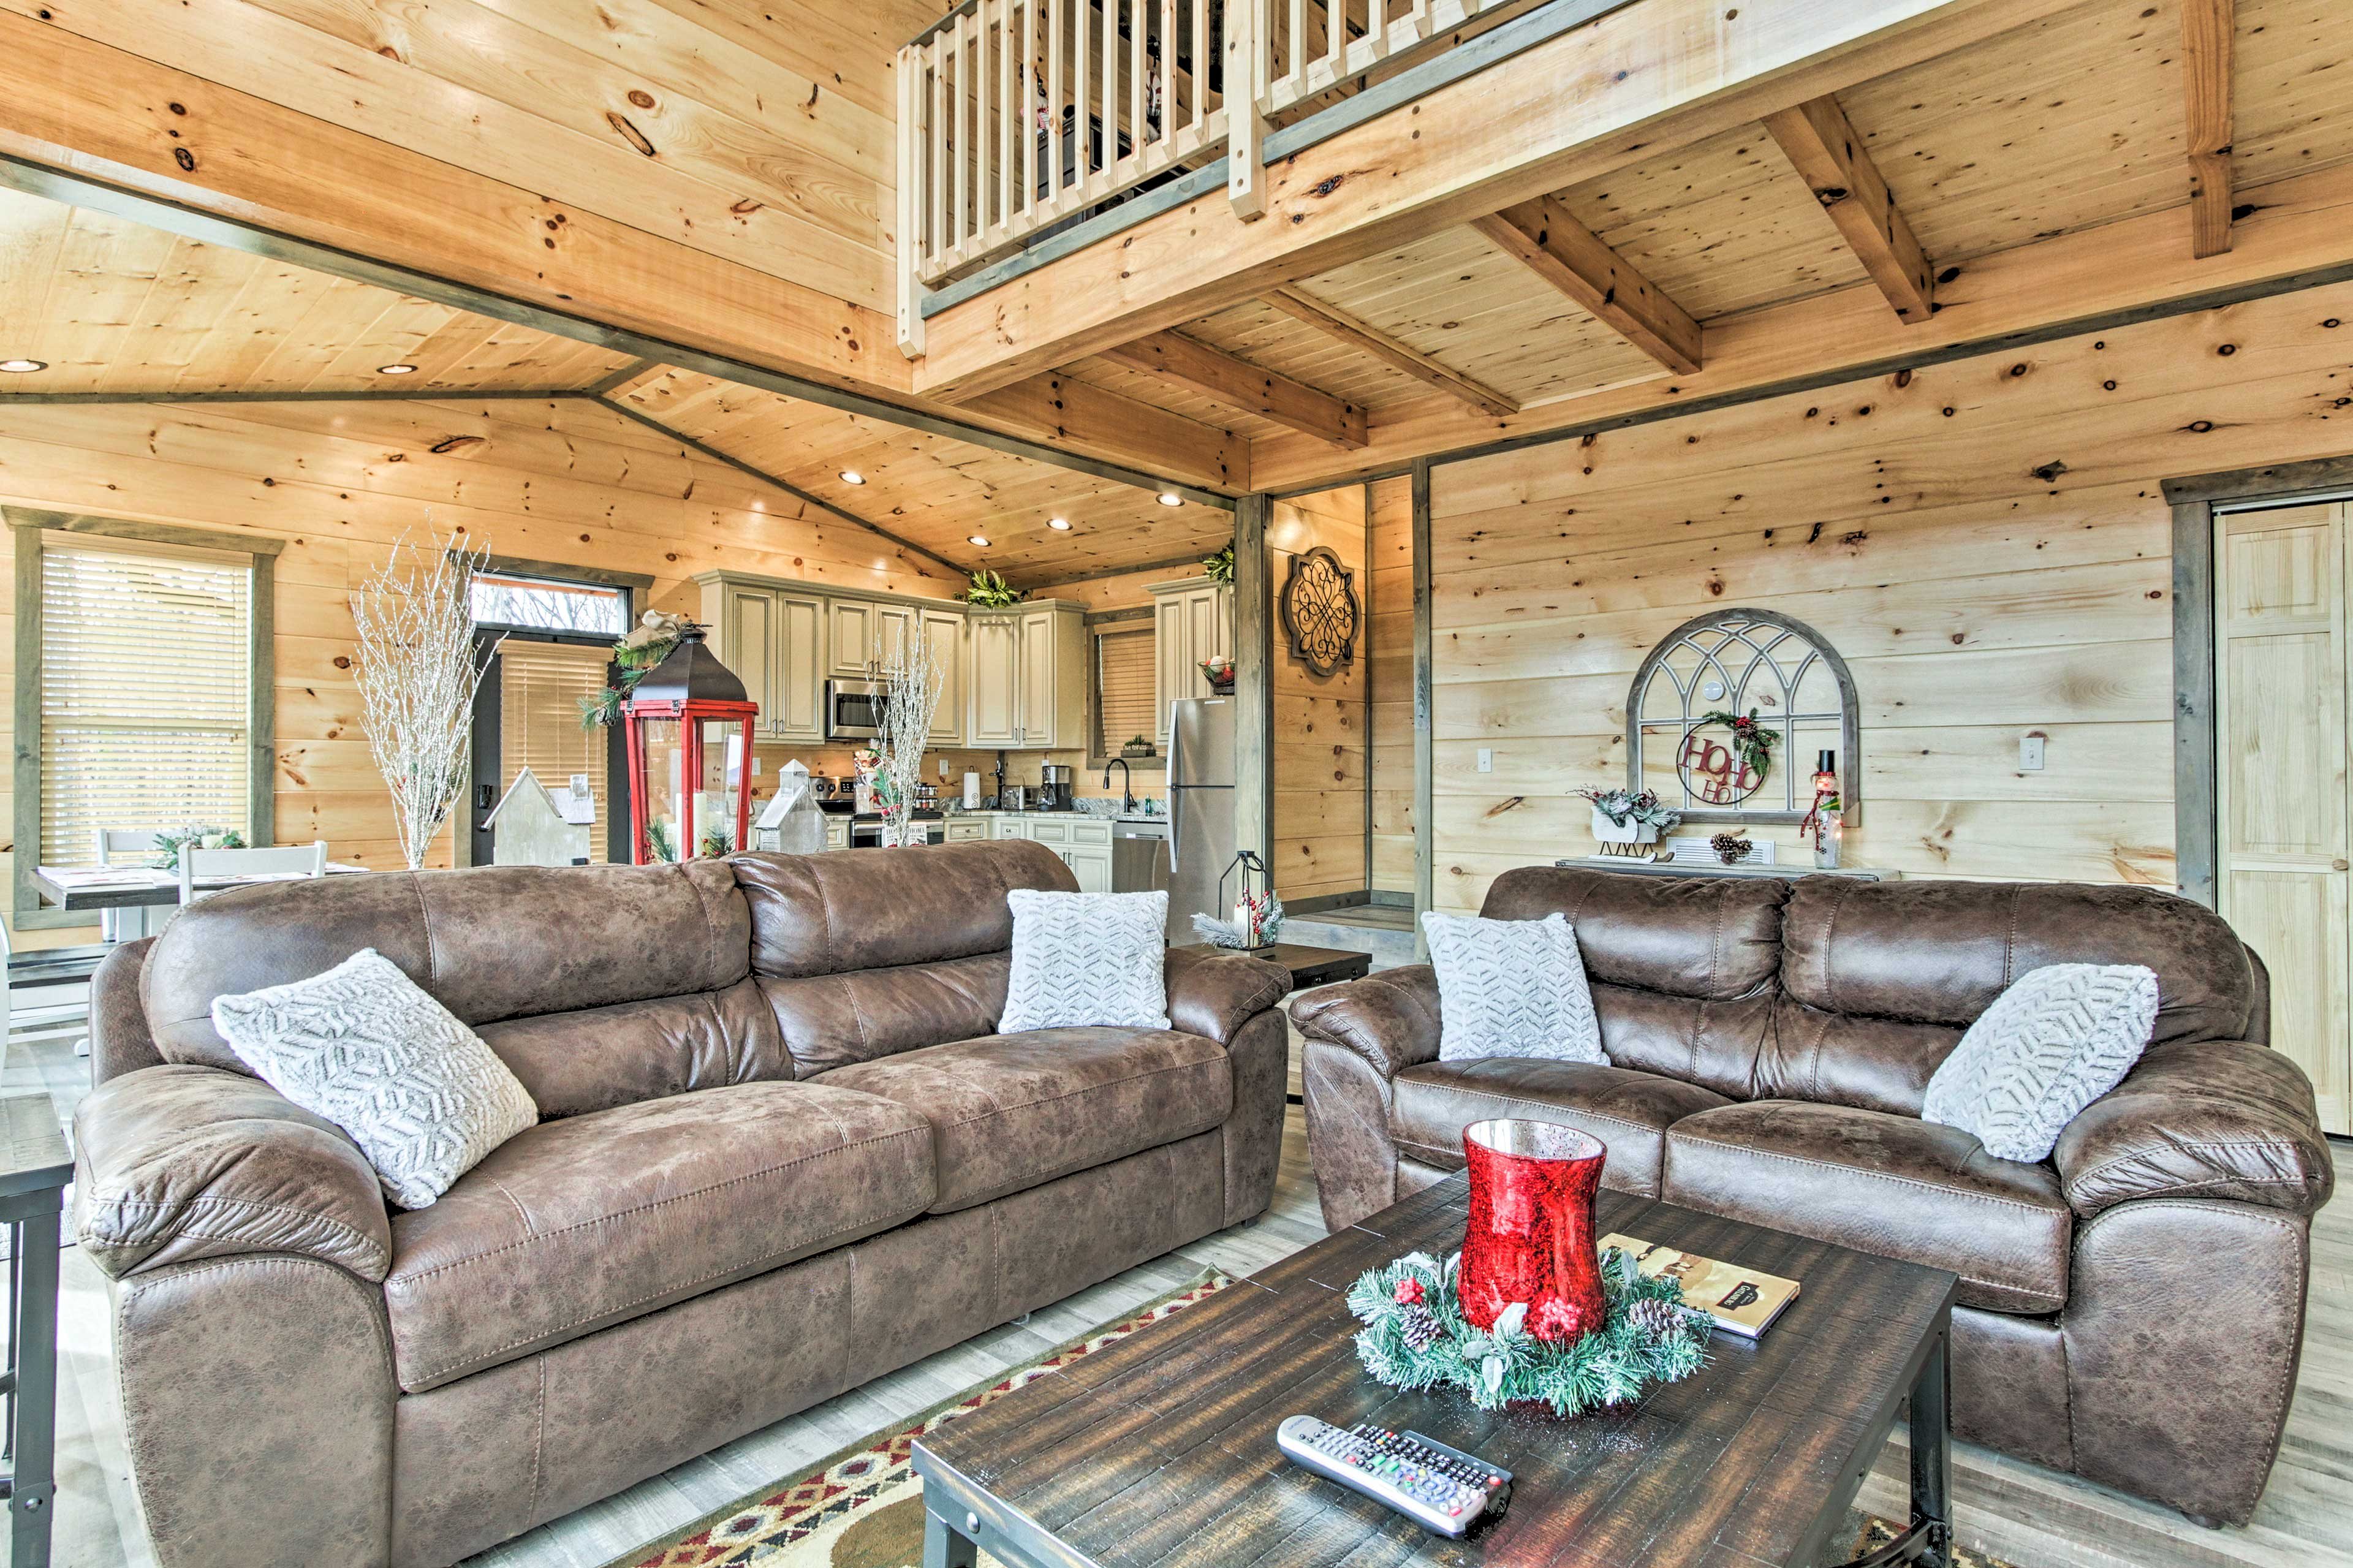 The open floor plan and vaulted ceiling make this cabin feel extra spacious!